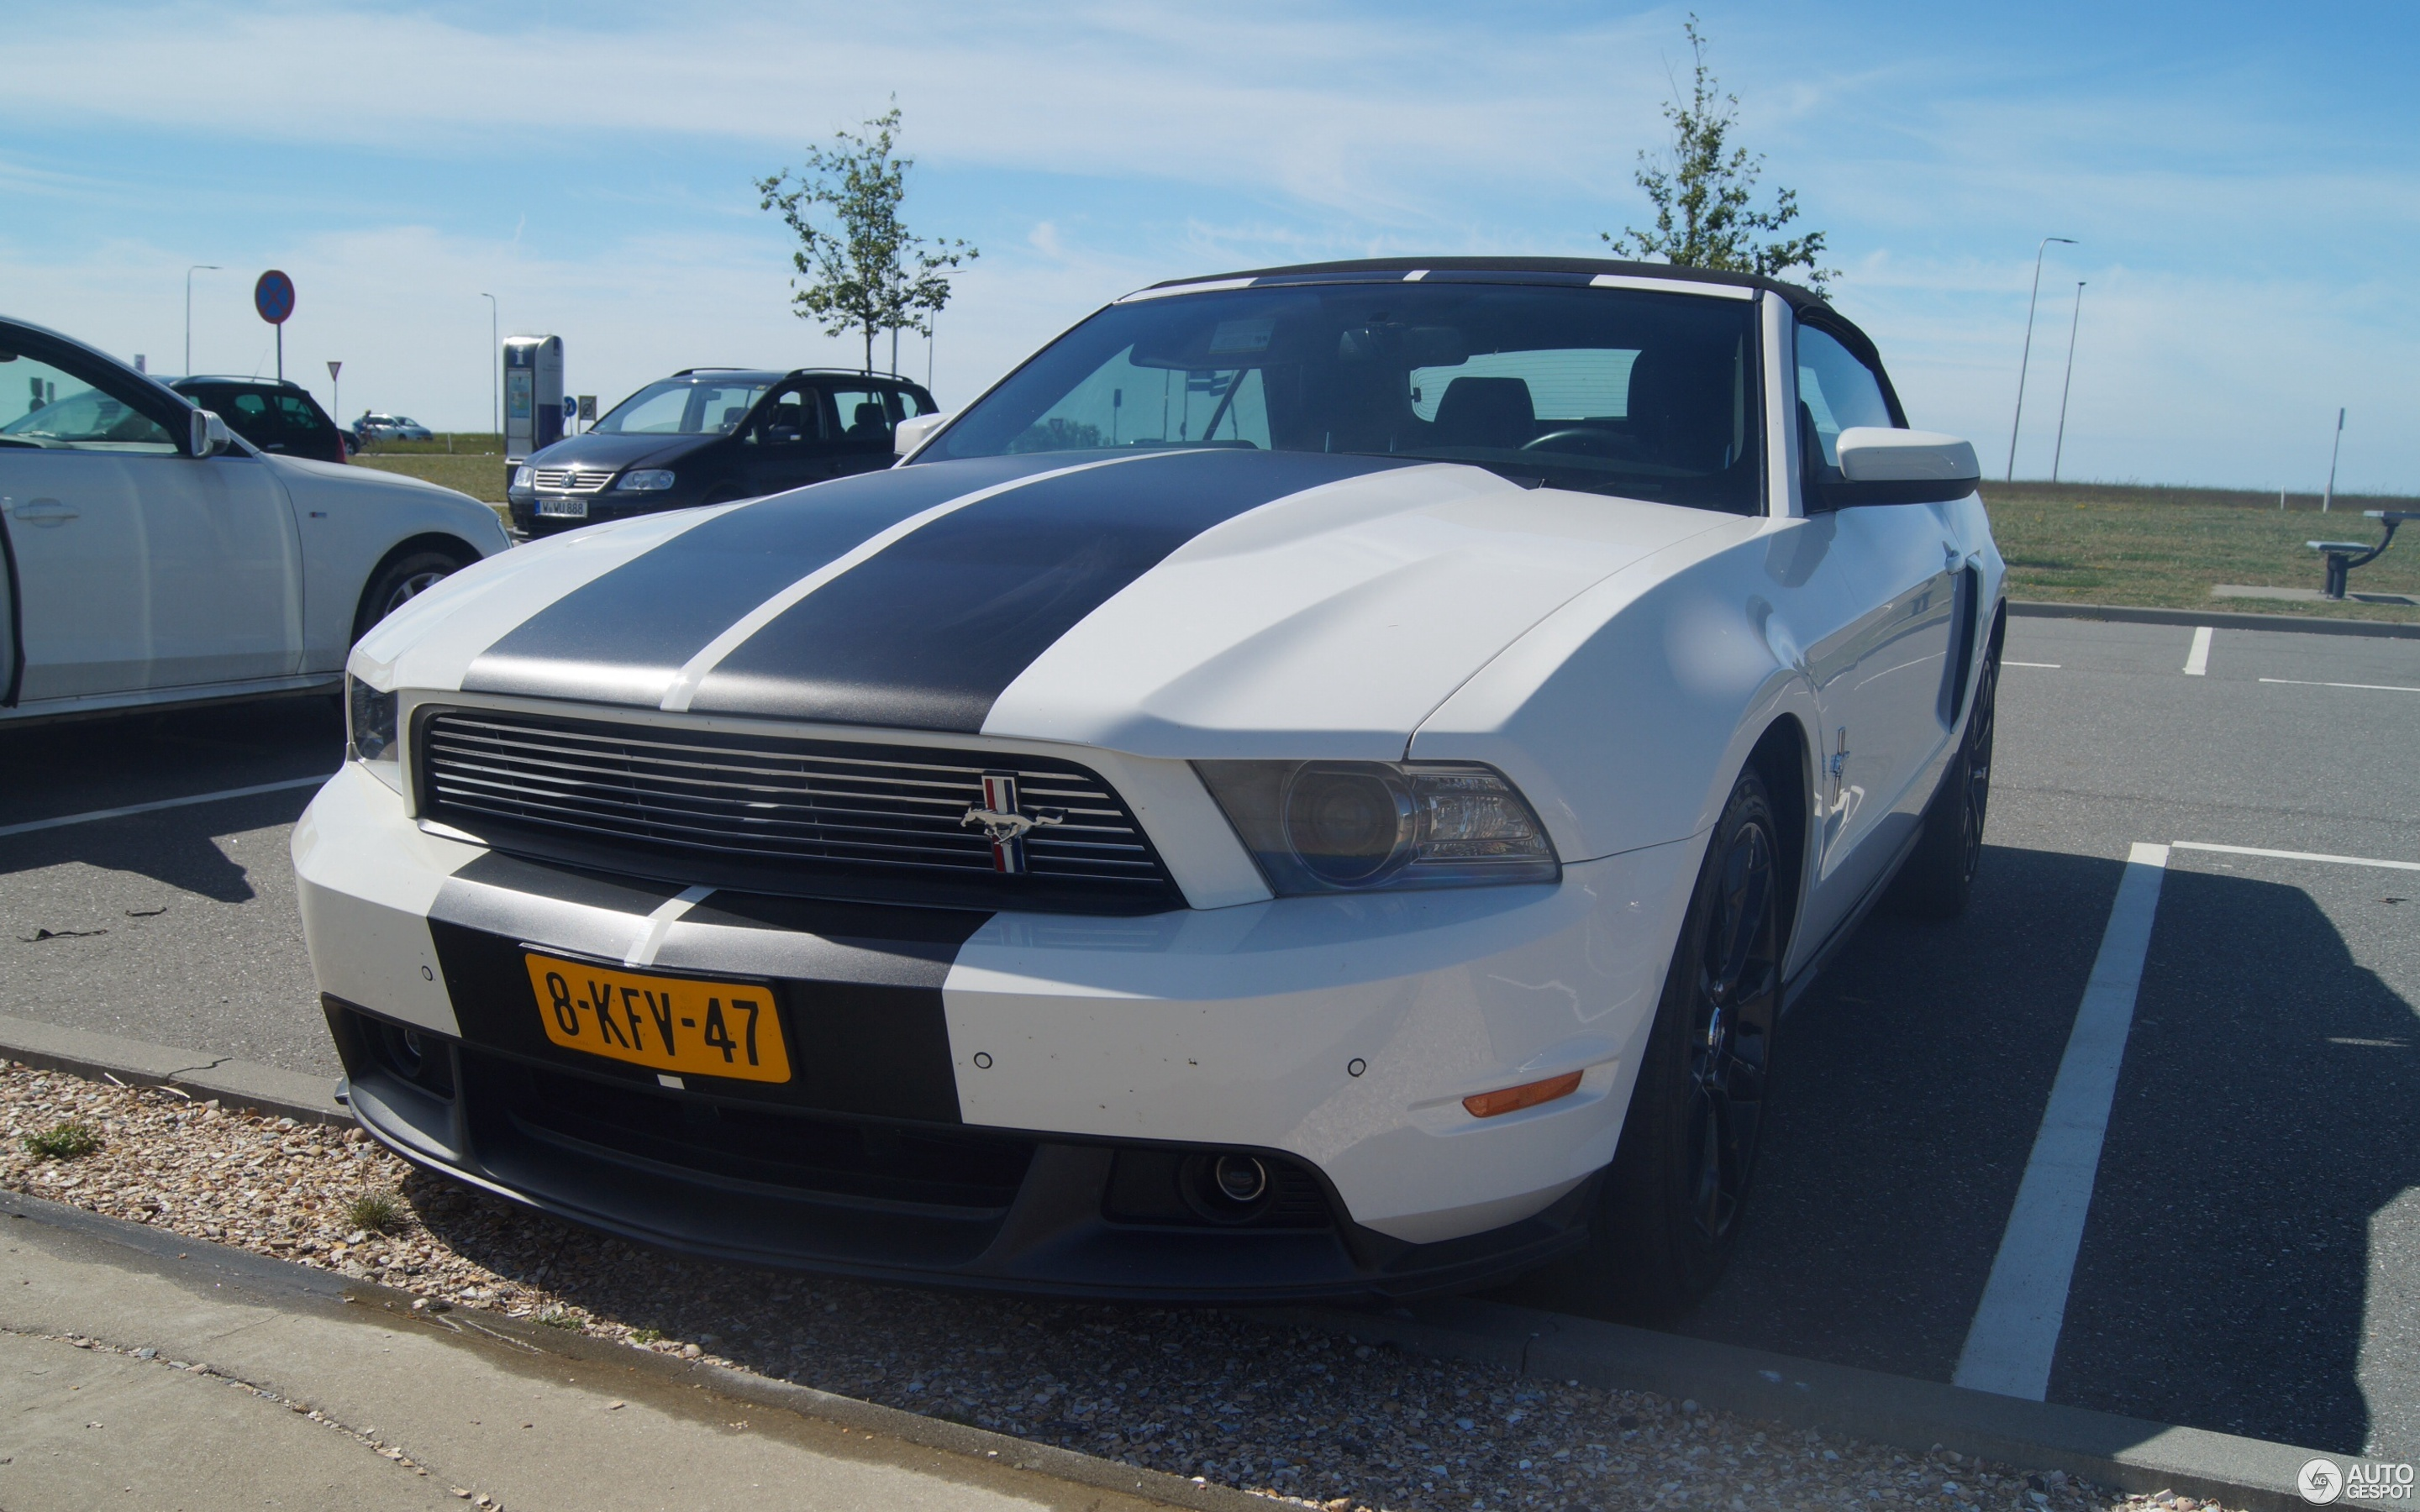 Ford Mustang Gt California Special Convertible 2012 25 May 2015